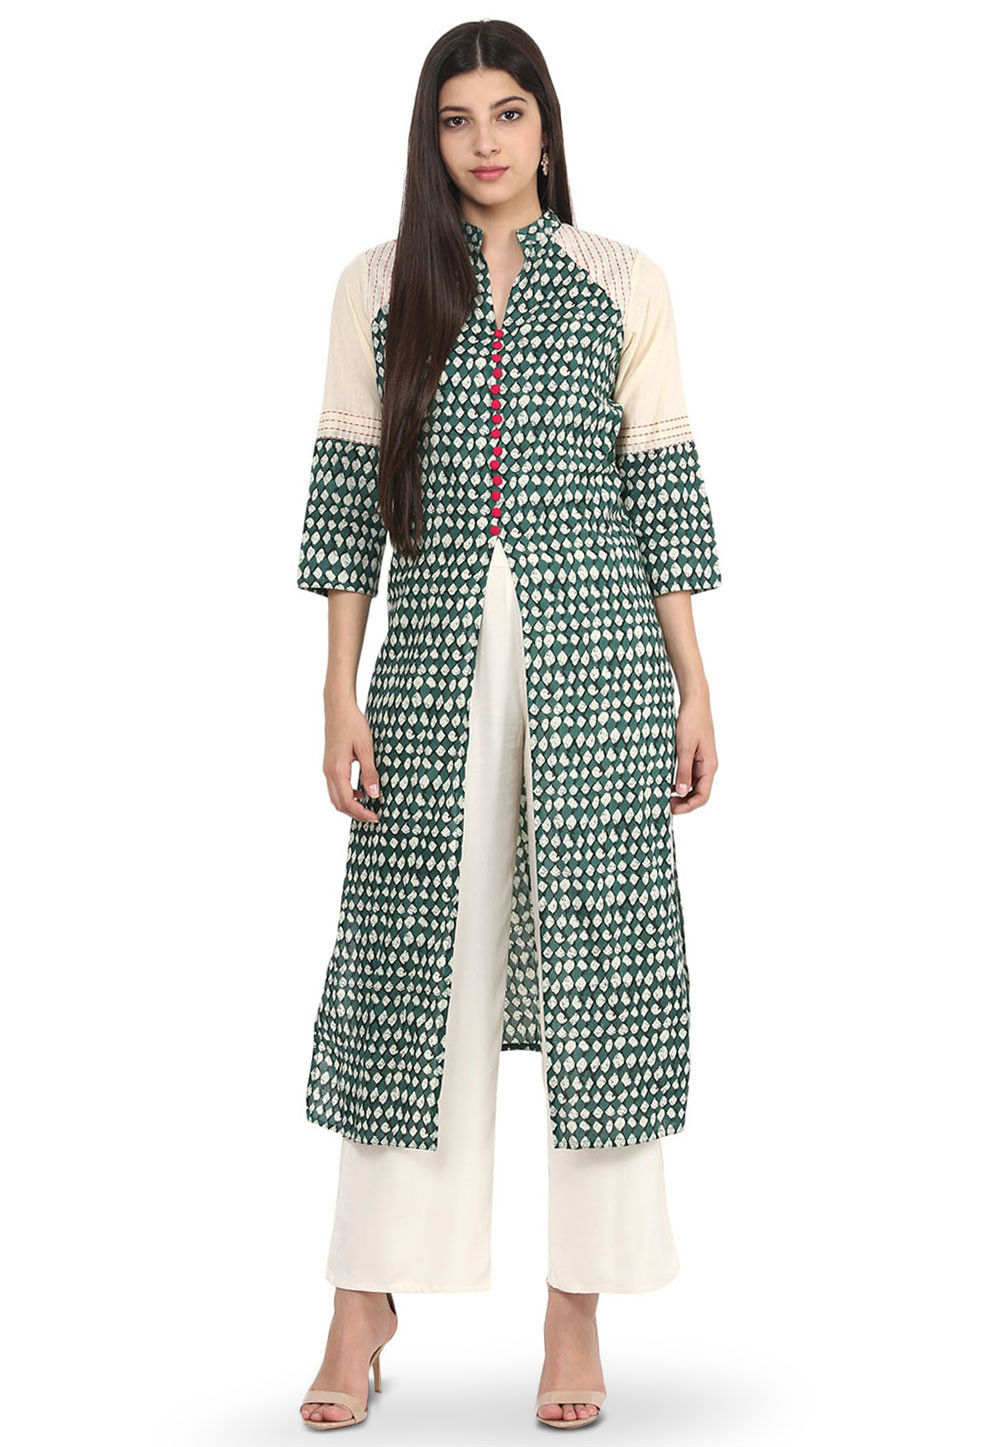 Printed Cotton Jacket Style Kurta in Off White and Teal Green